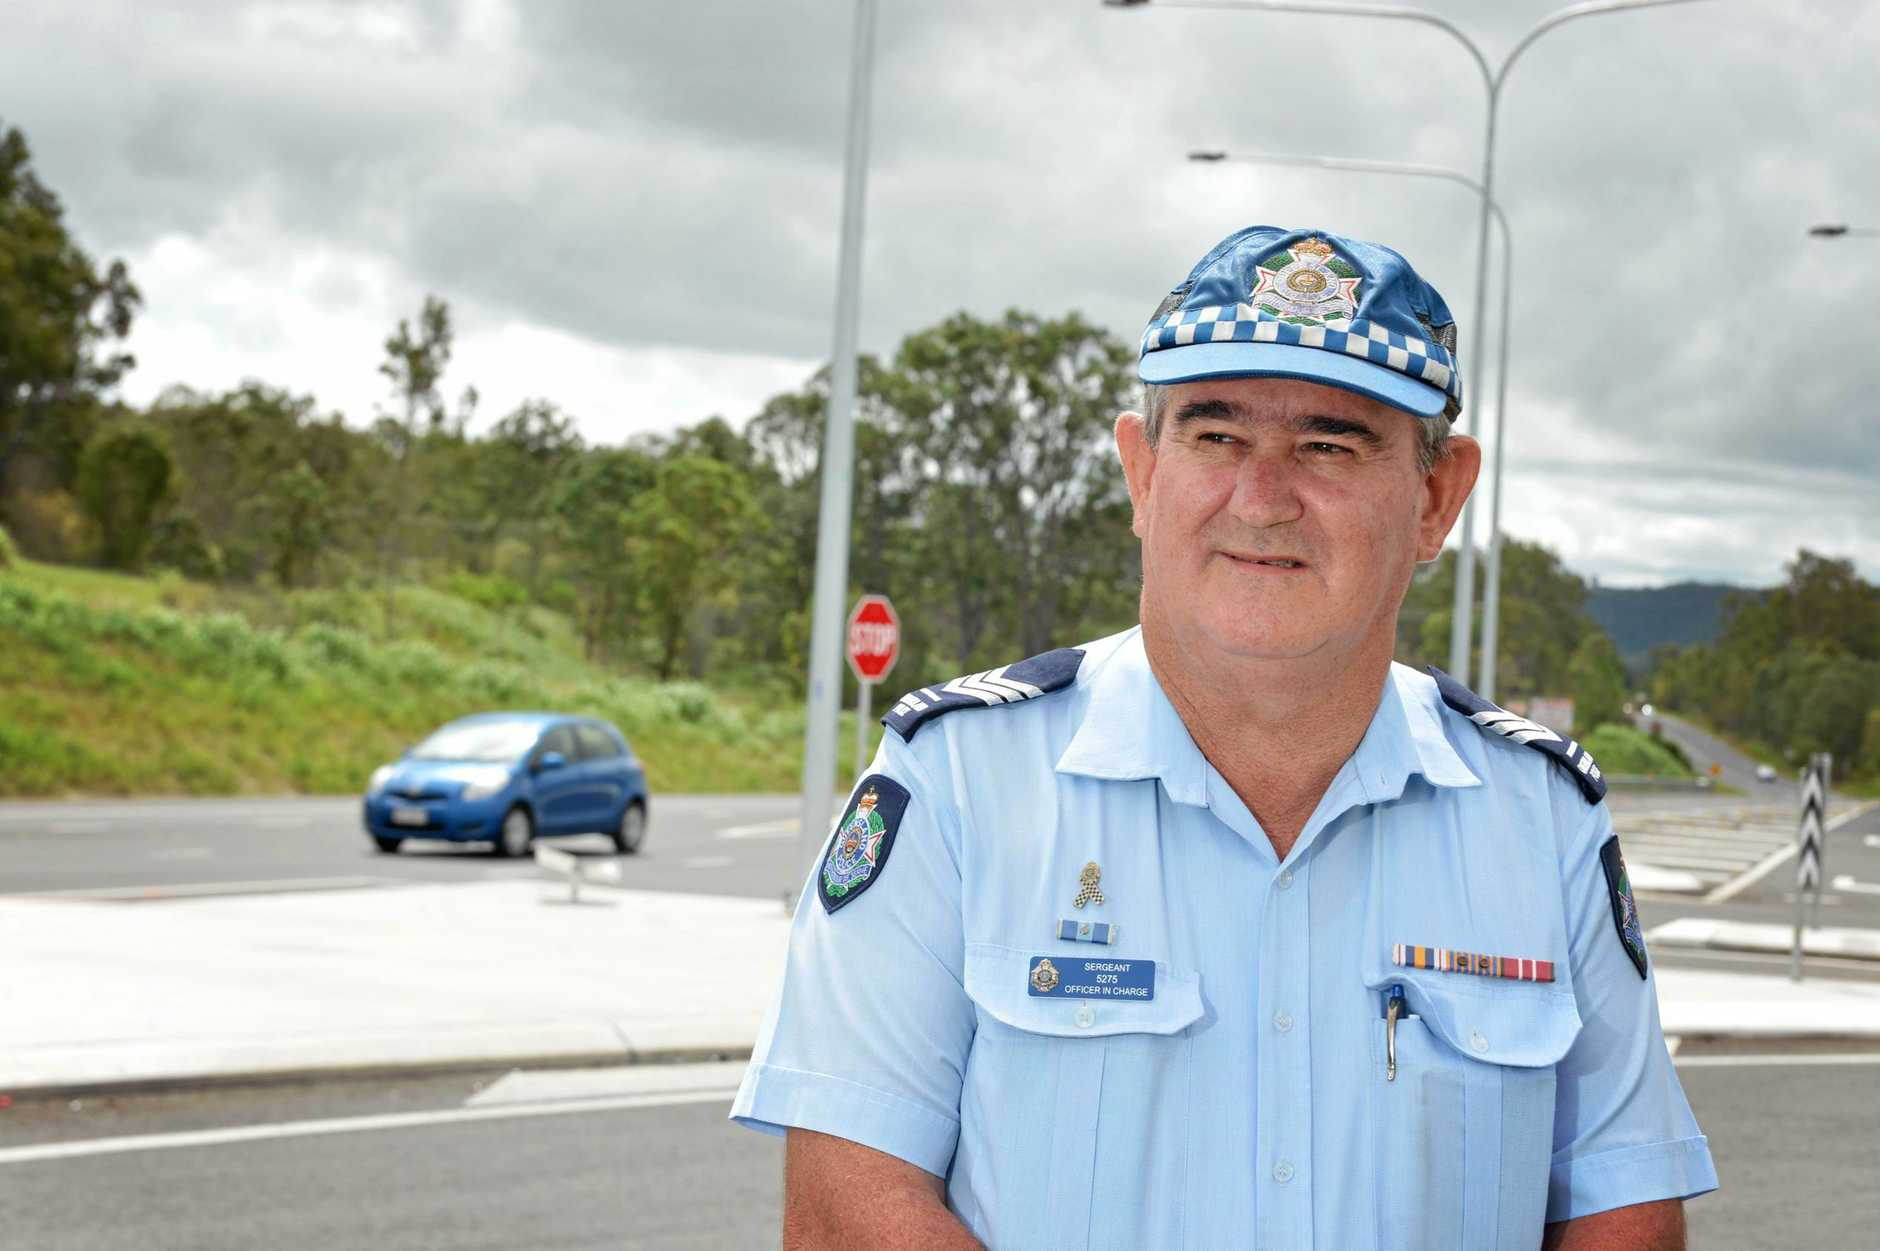 Sergeant Steve Webb at the Gunalda service station near Gympie after a fatal car accident.